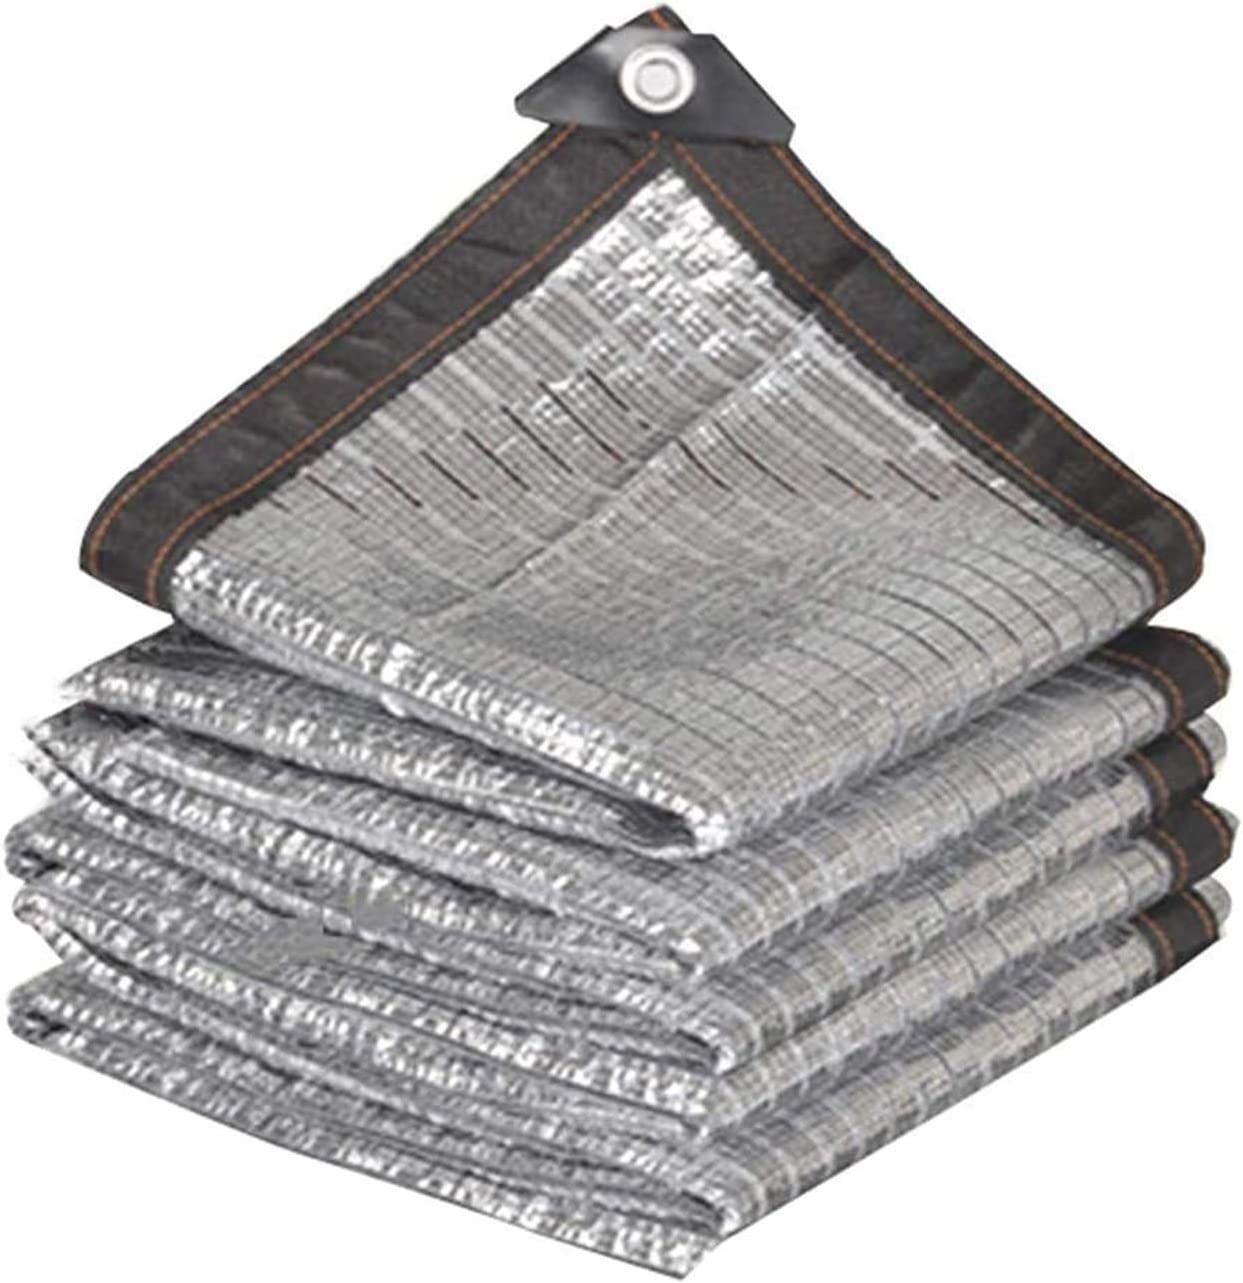 Shade Time sale Net Silver Cloth Aluminum Light Anti- Foil Nippon regular agency Reflected